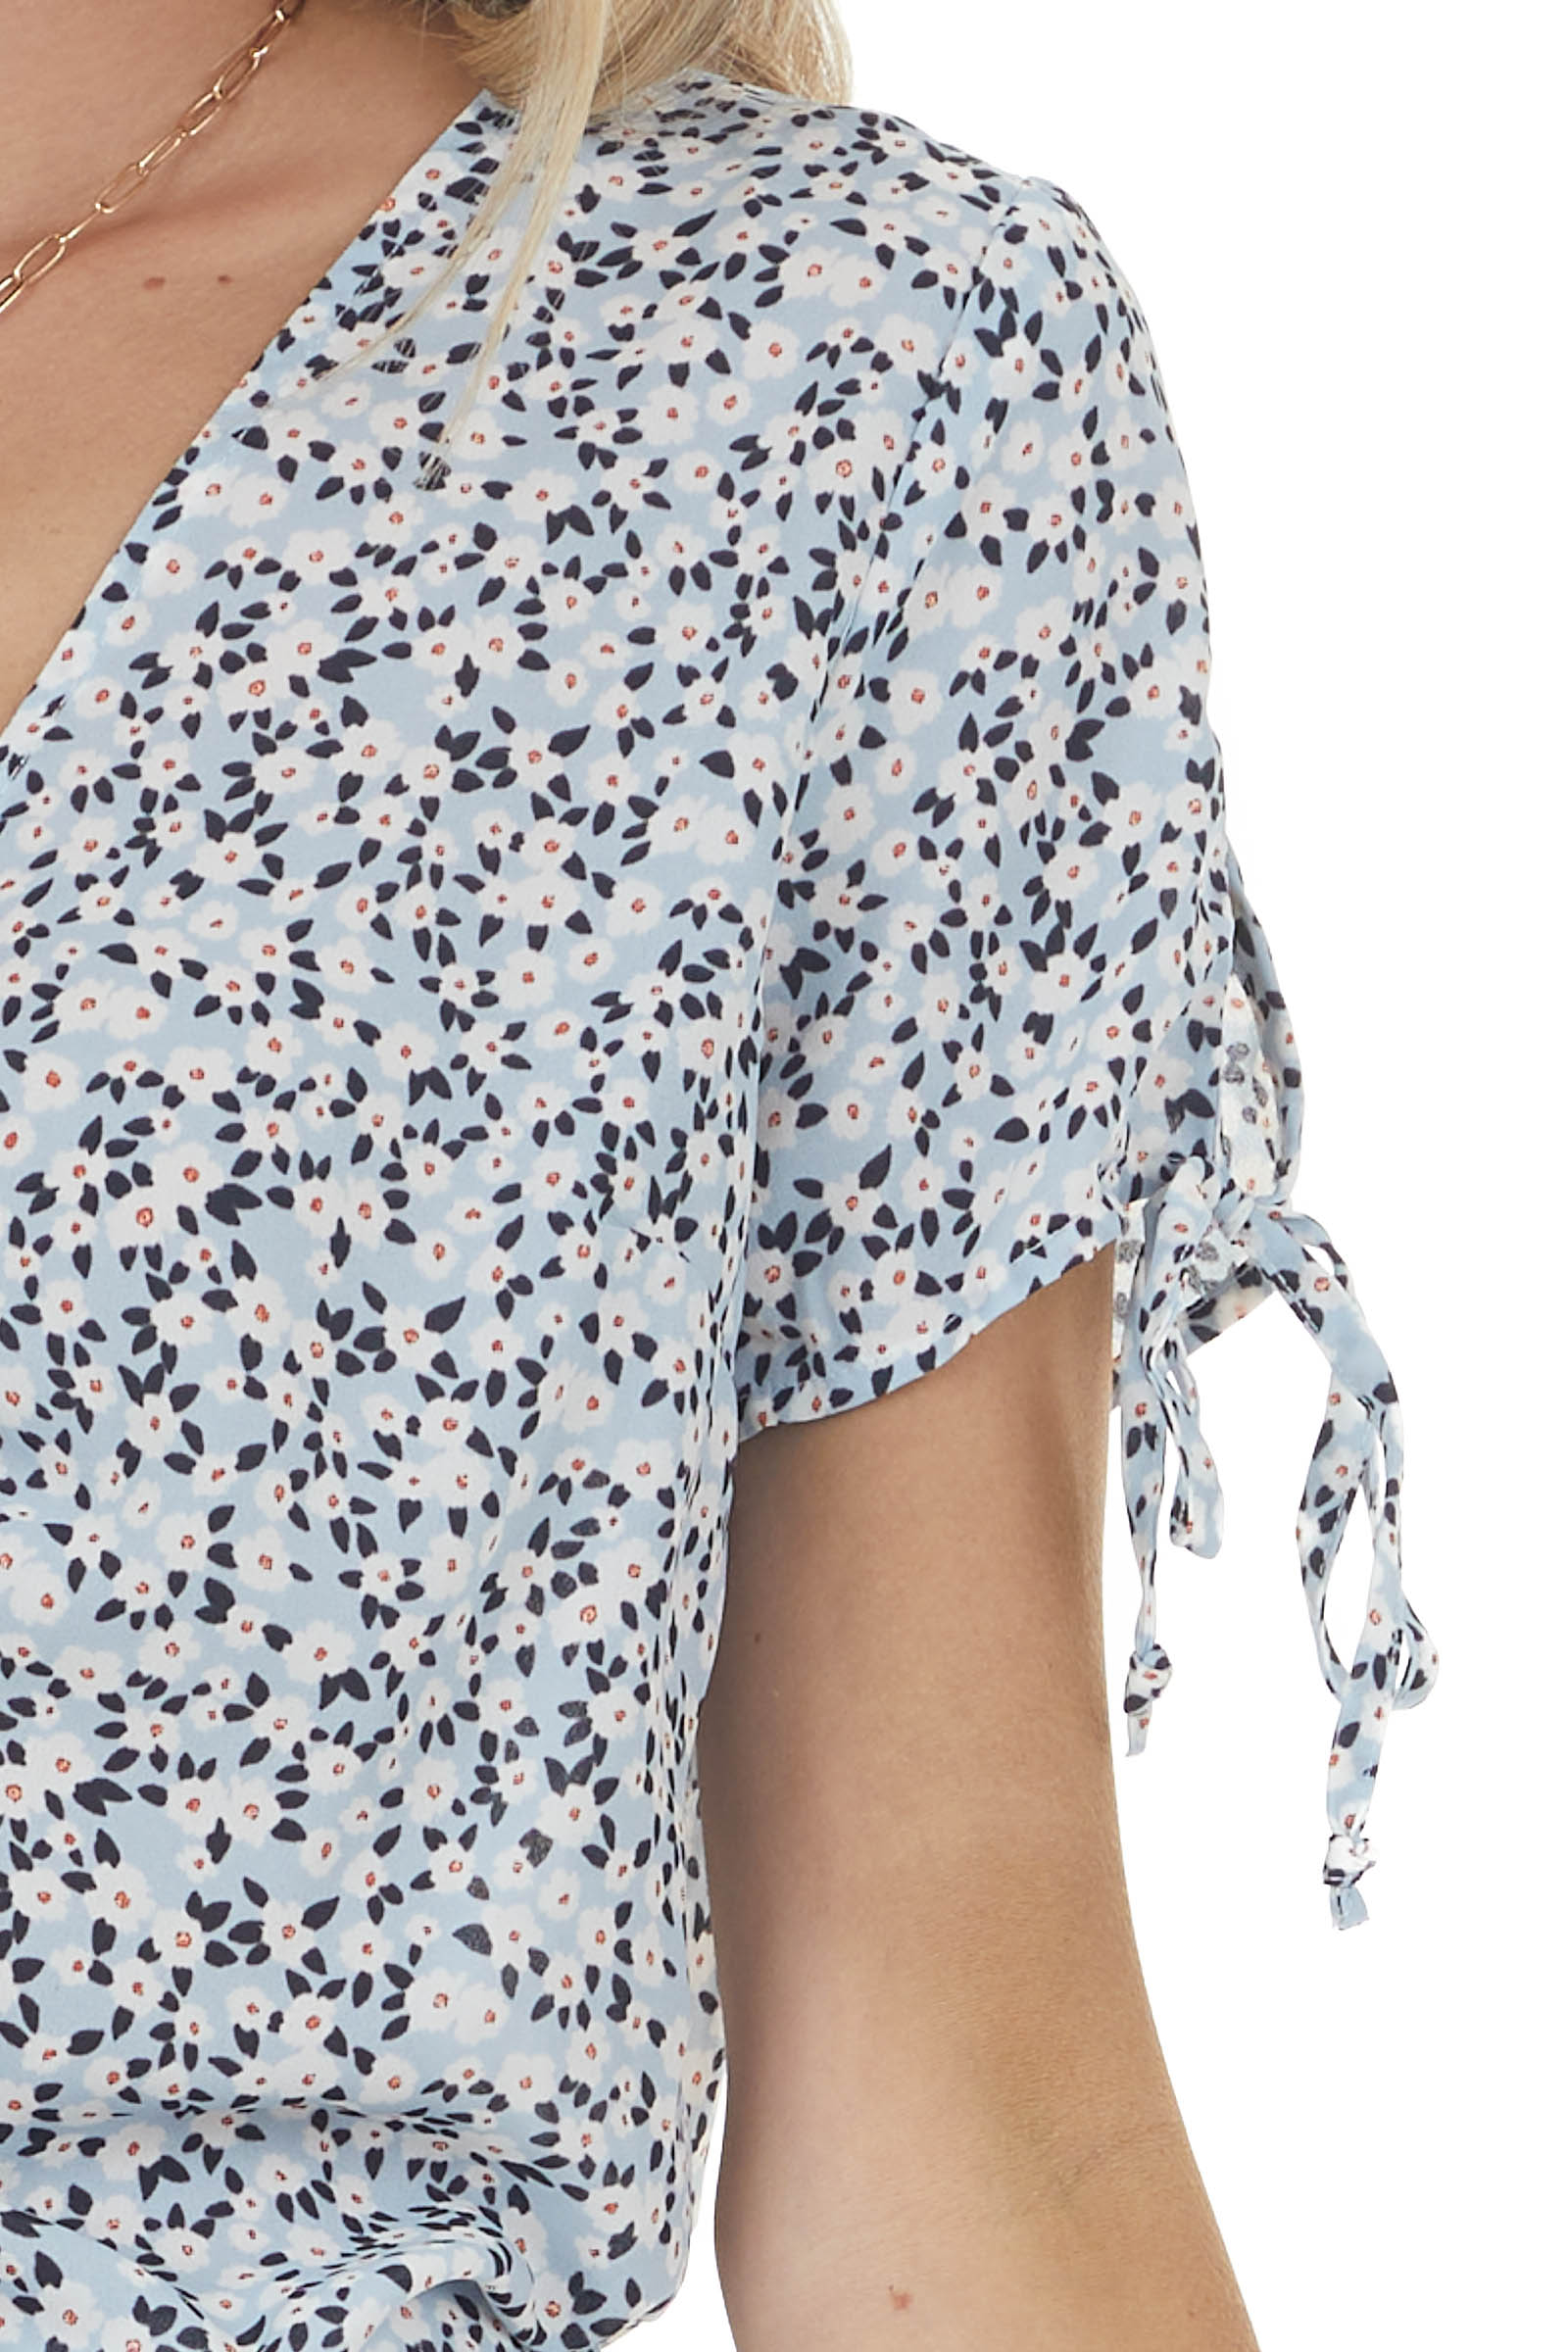 Baby Blue Ditsy Short Sleeve Blouse with Front Cinch and Tie